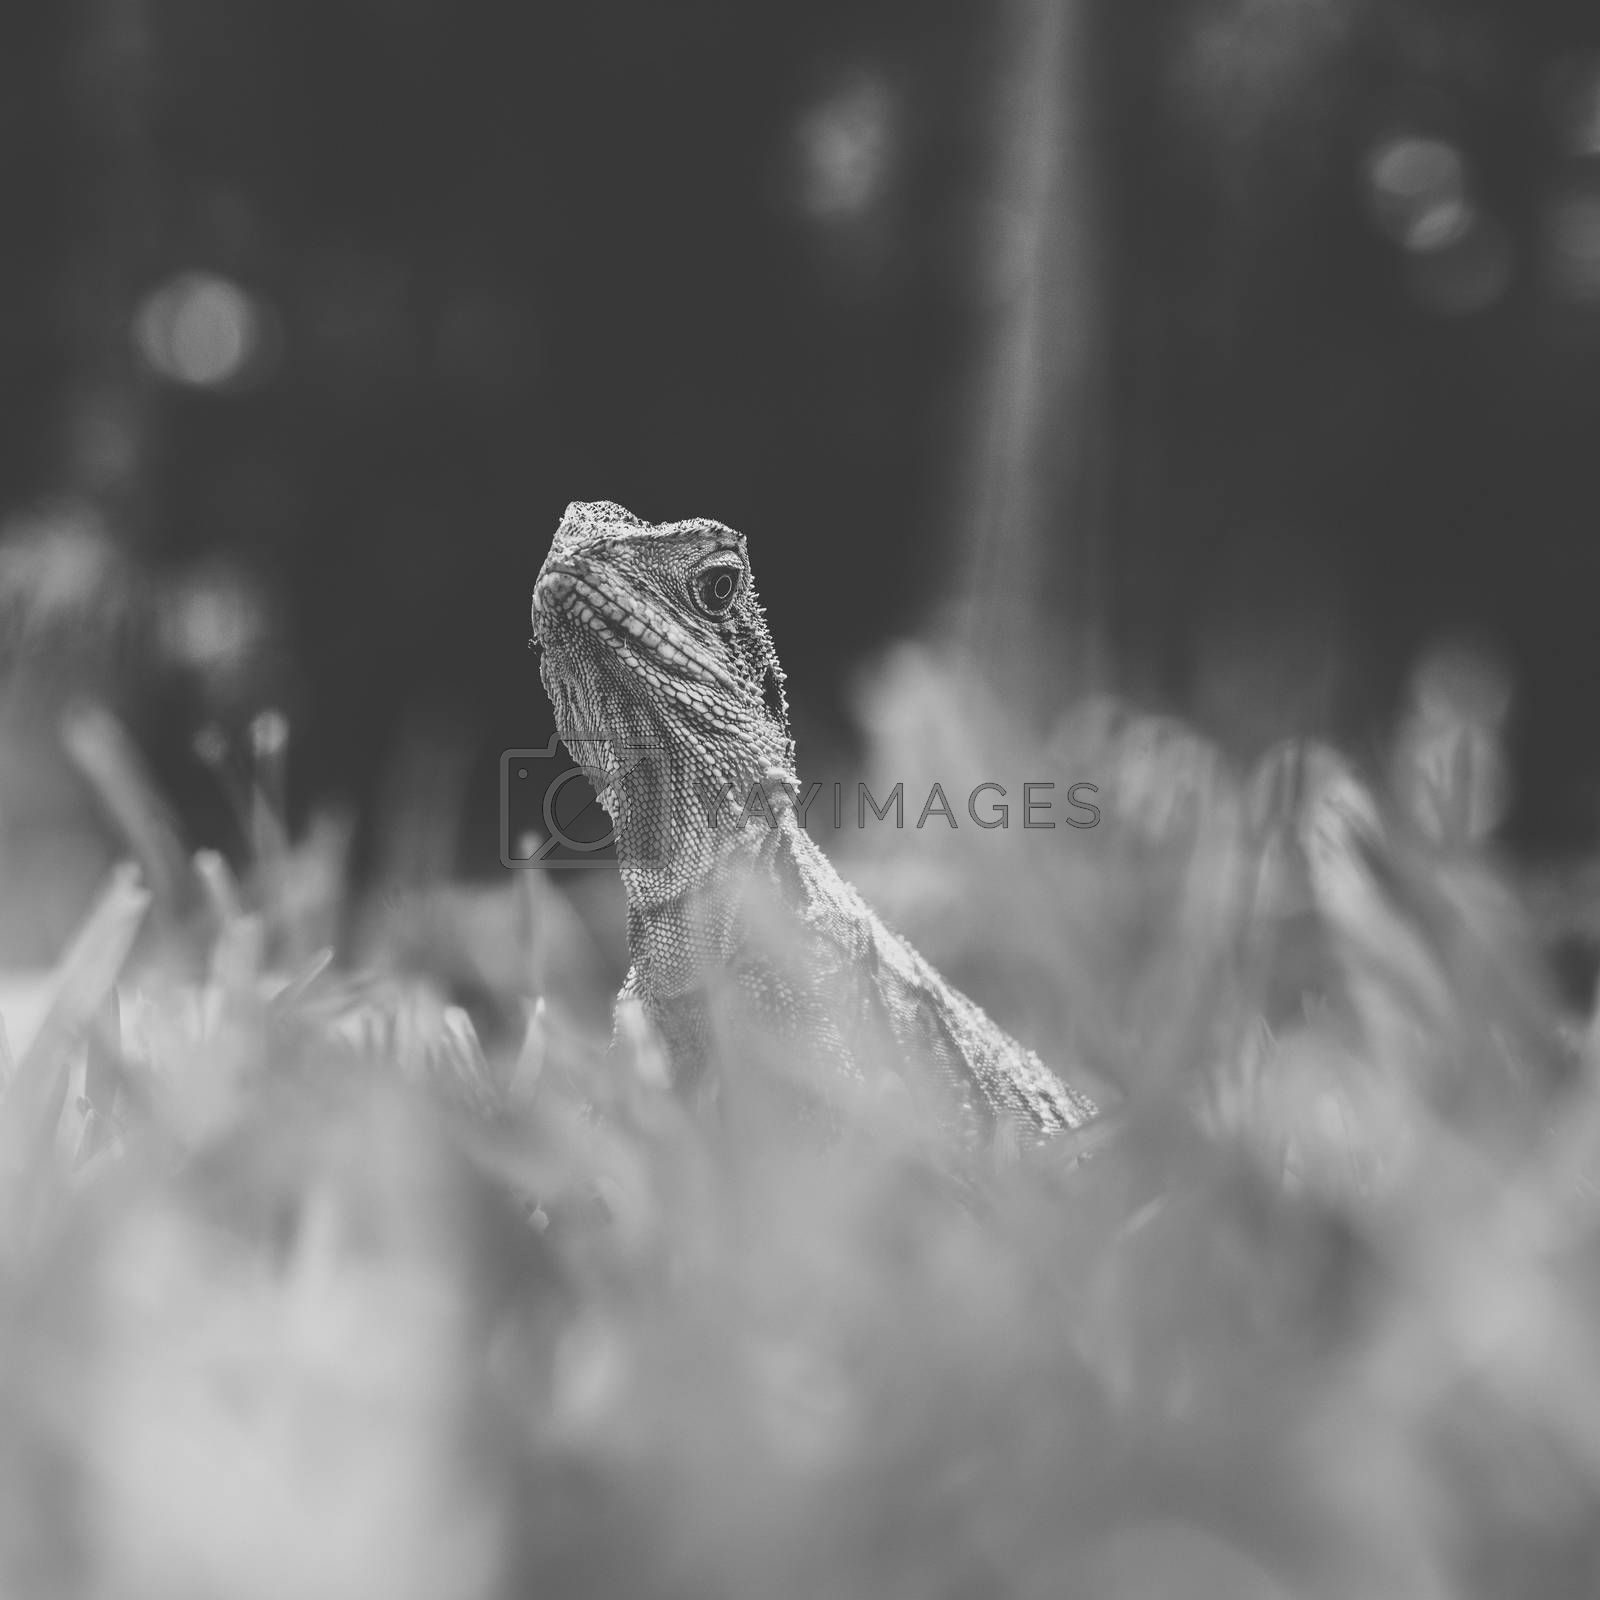 Water Dragon outside during the day time.